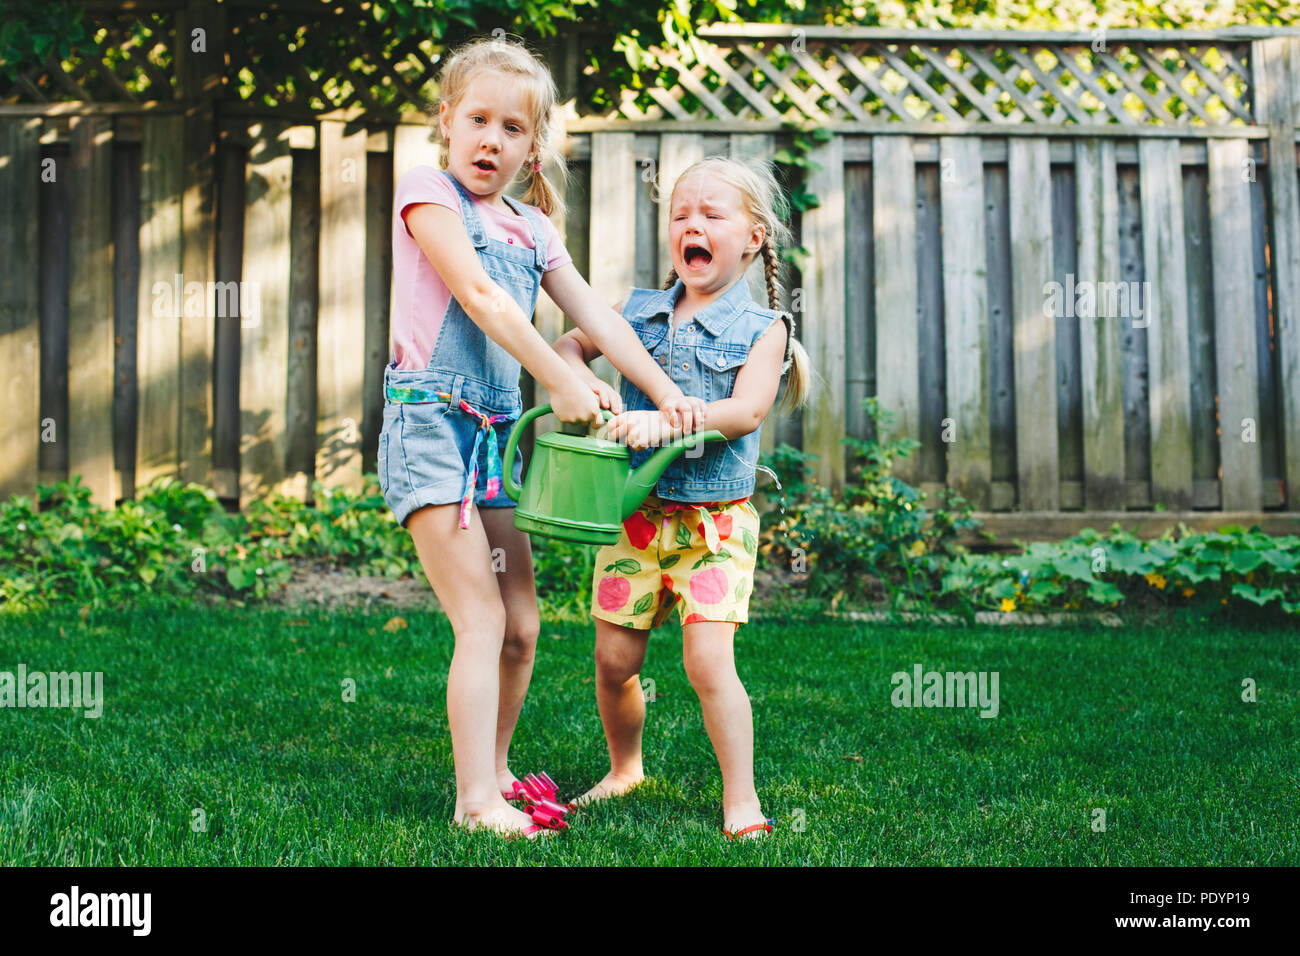 Portrait of  two little girls  sisters having fight on home backyard. Friends girls share watering pot can. Lifestyle family moment of siblings quarre - Stock Image